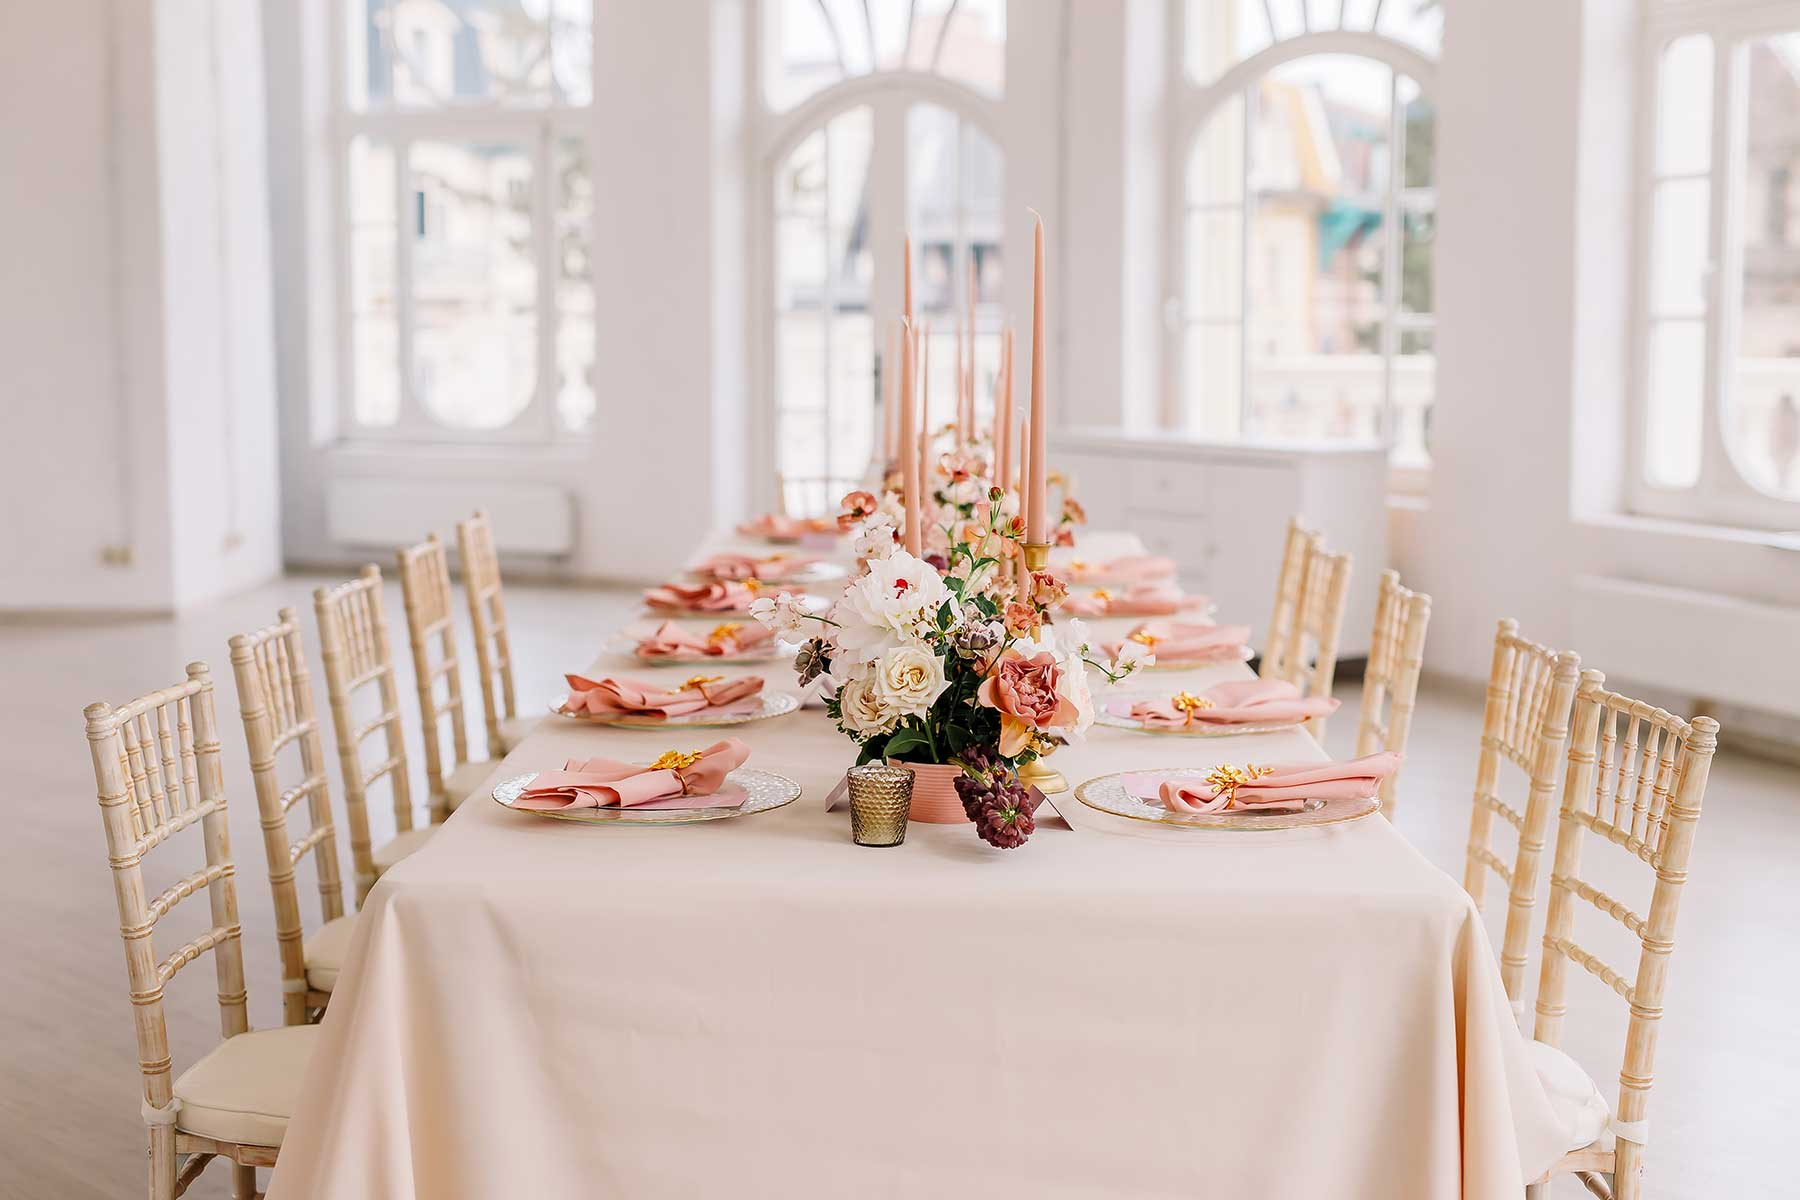 Table Linen Hire In Sydney – Guide Selecting The Best Providers